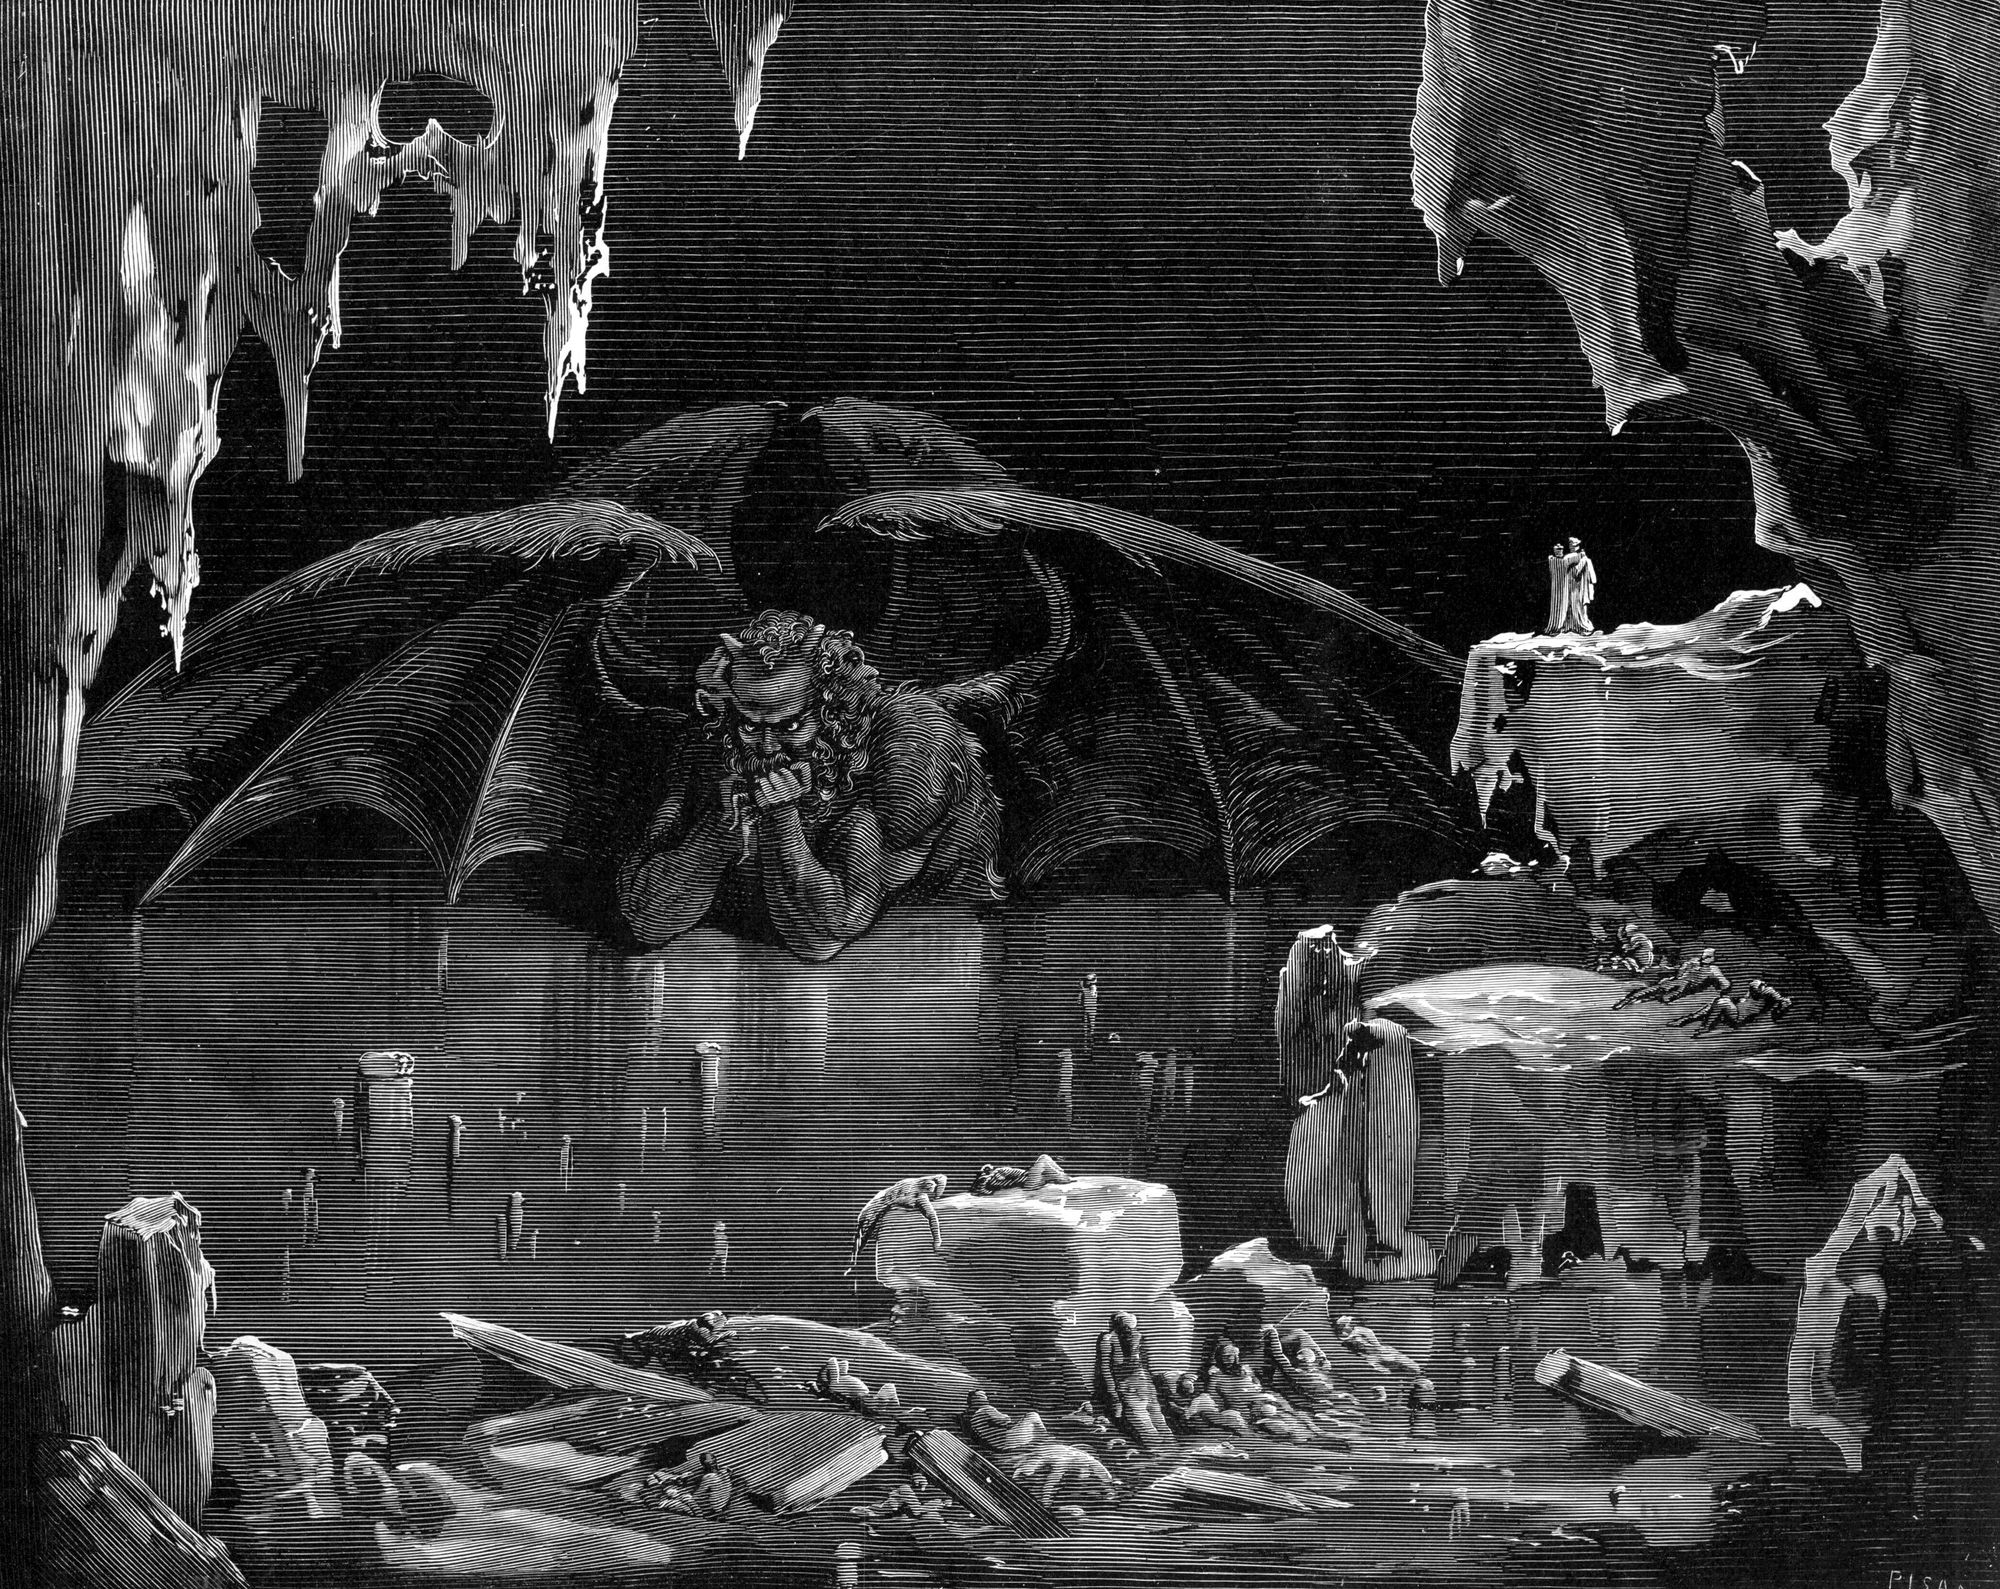 Drawing of Dante, Virgil, and Devil in Hell by Gustave Doré